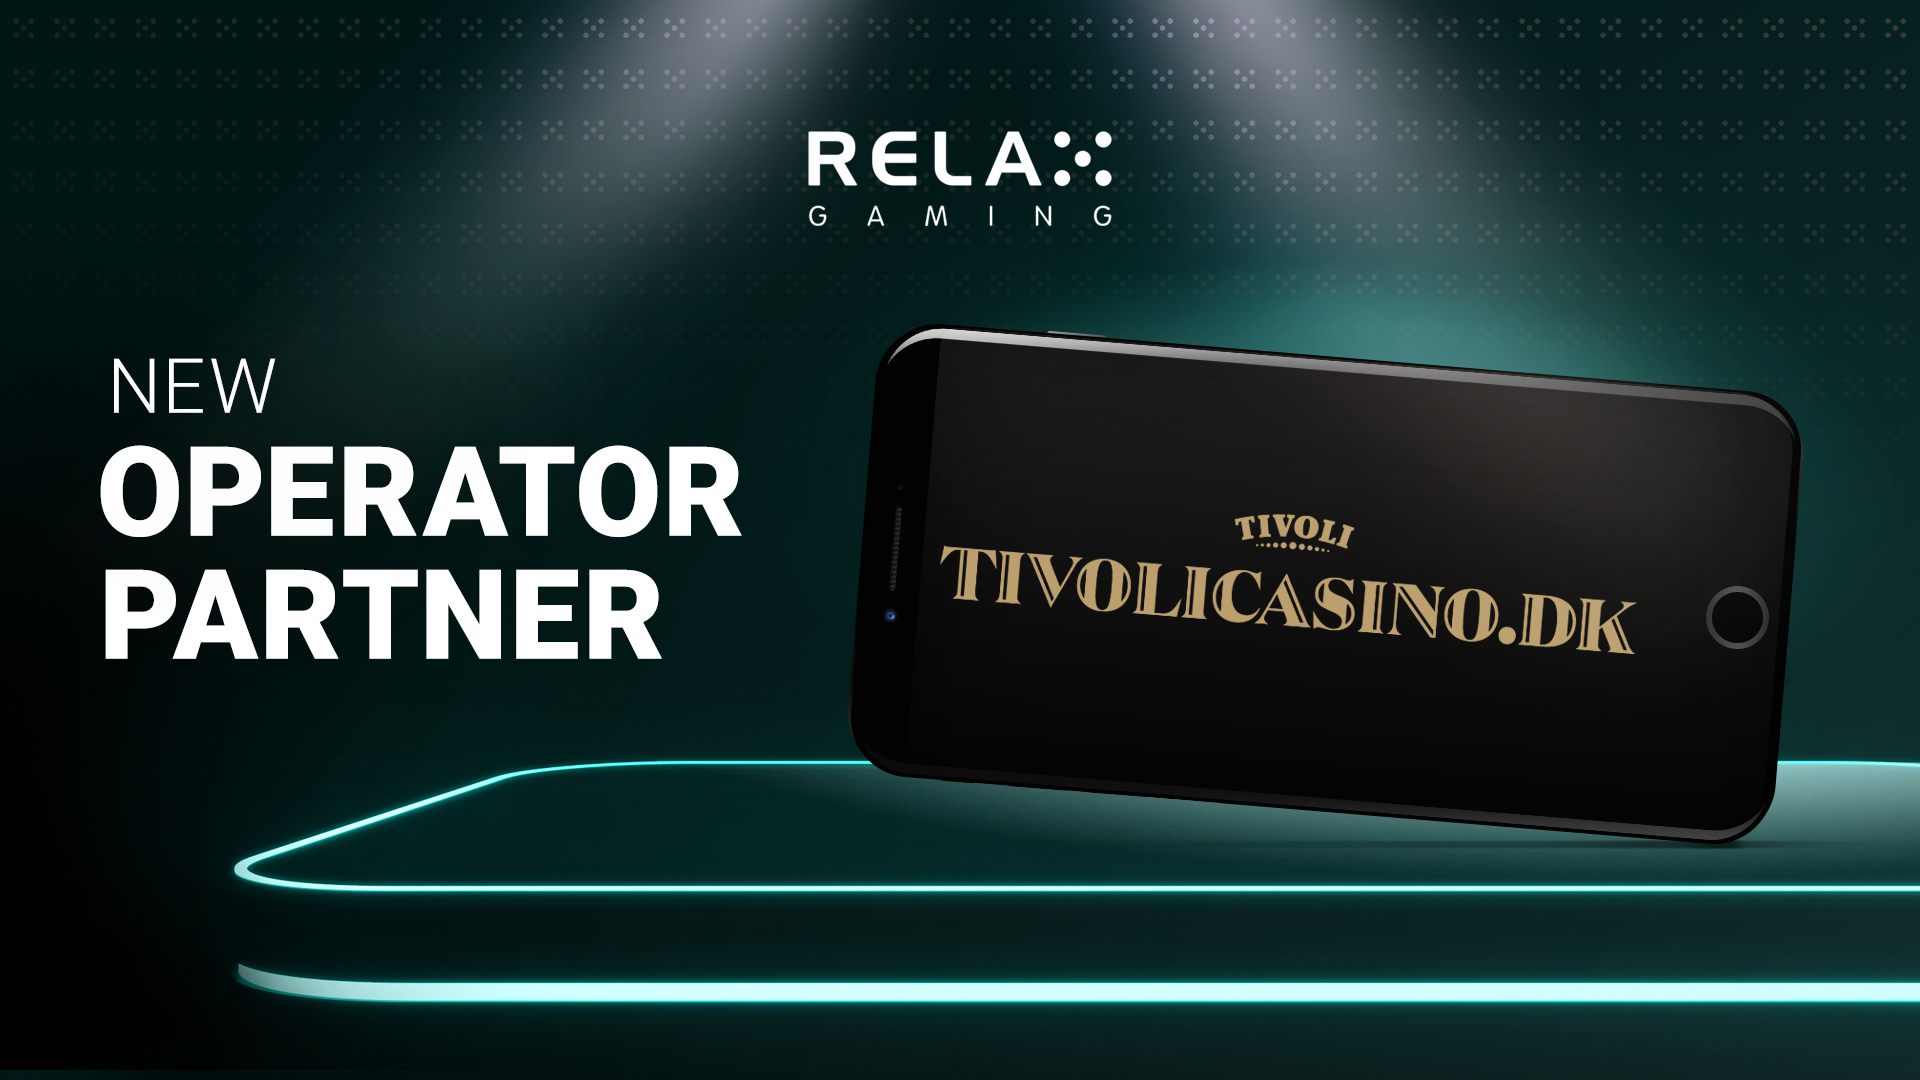 Relax Gaming expands in Denmark with Tivoli